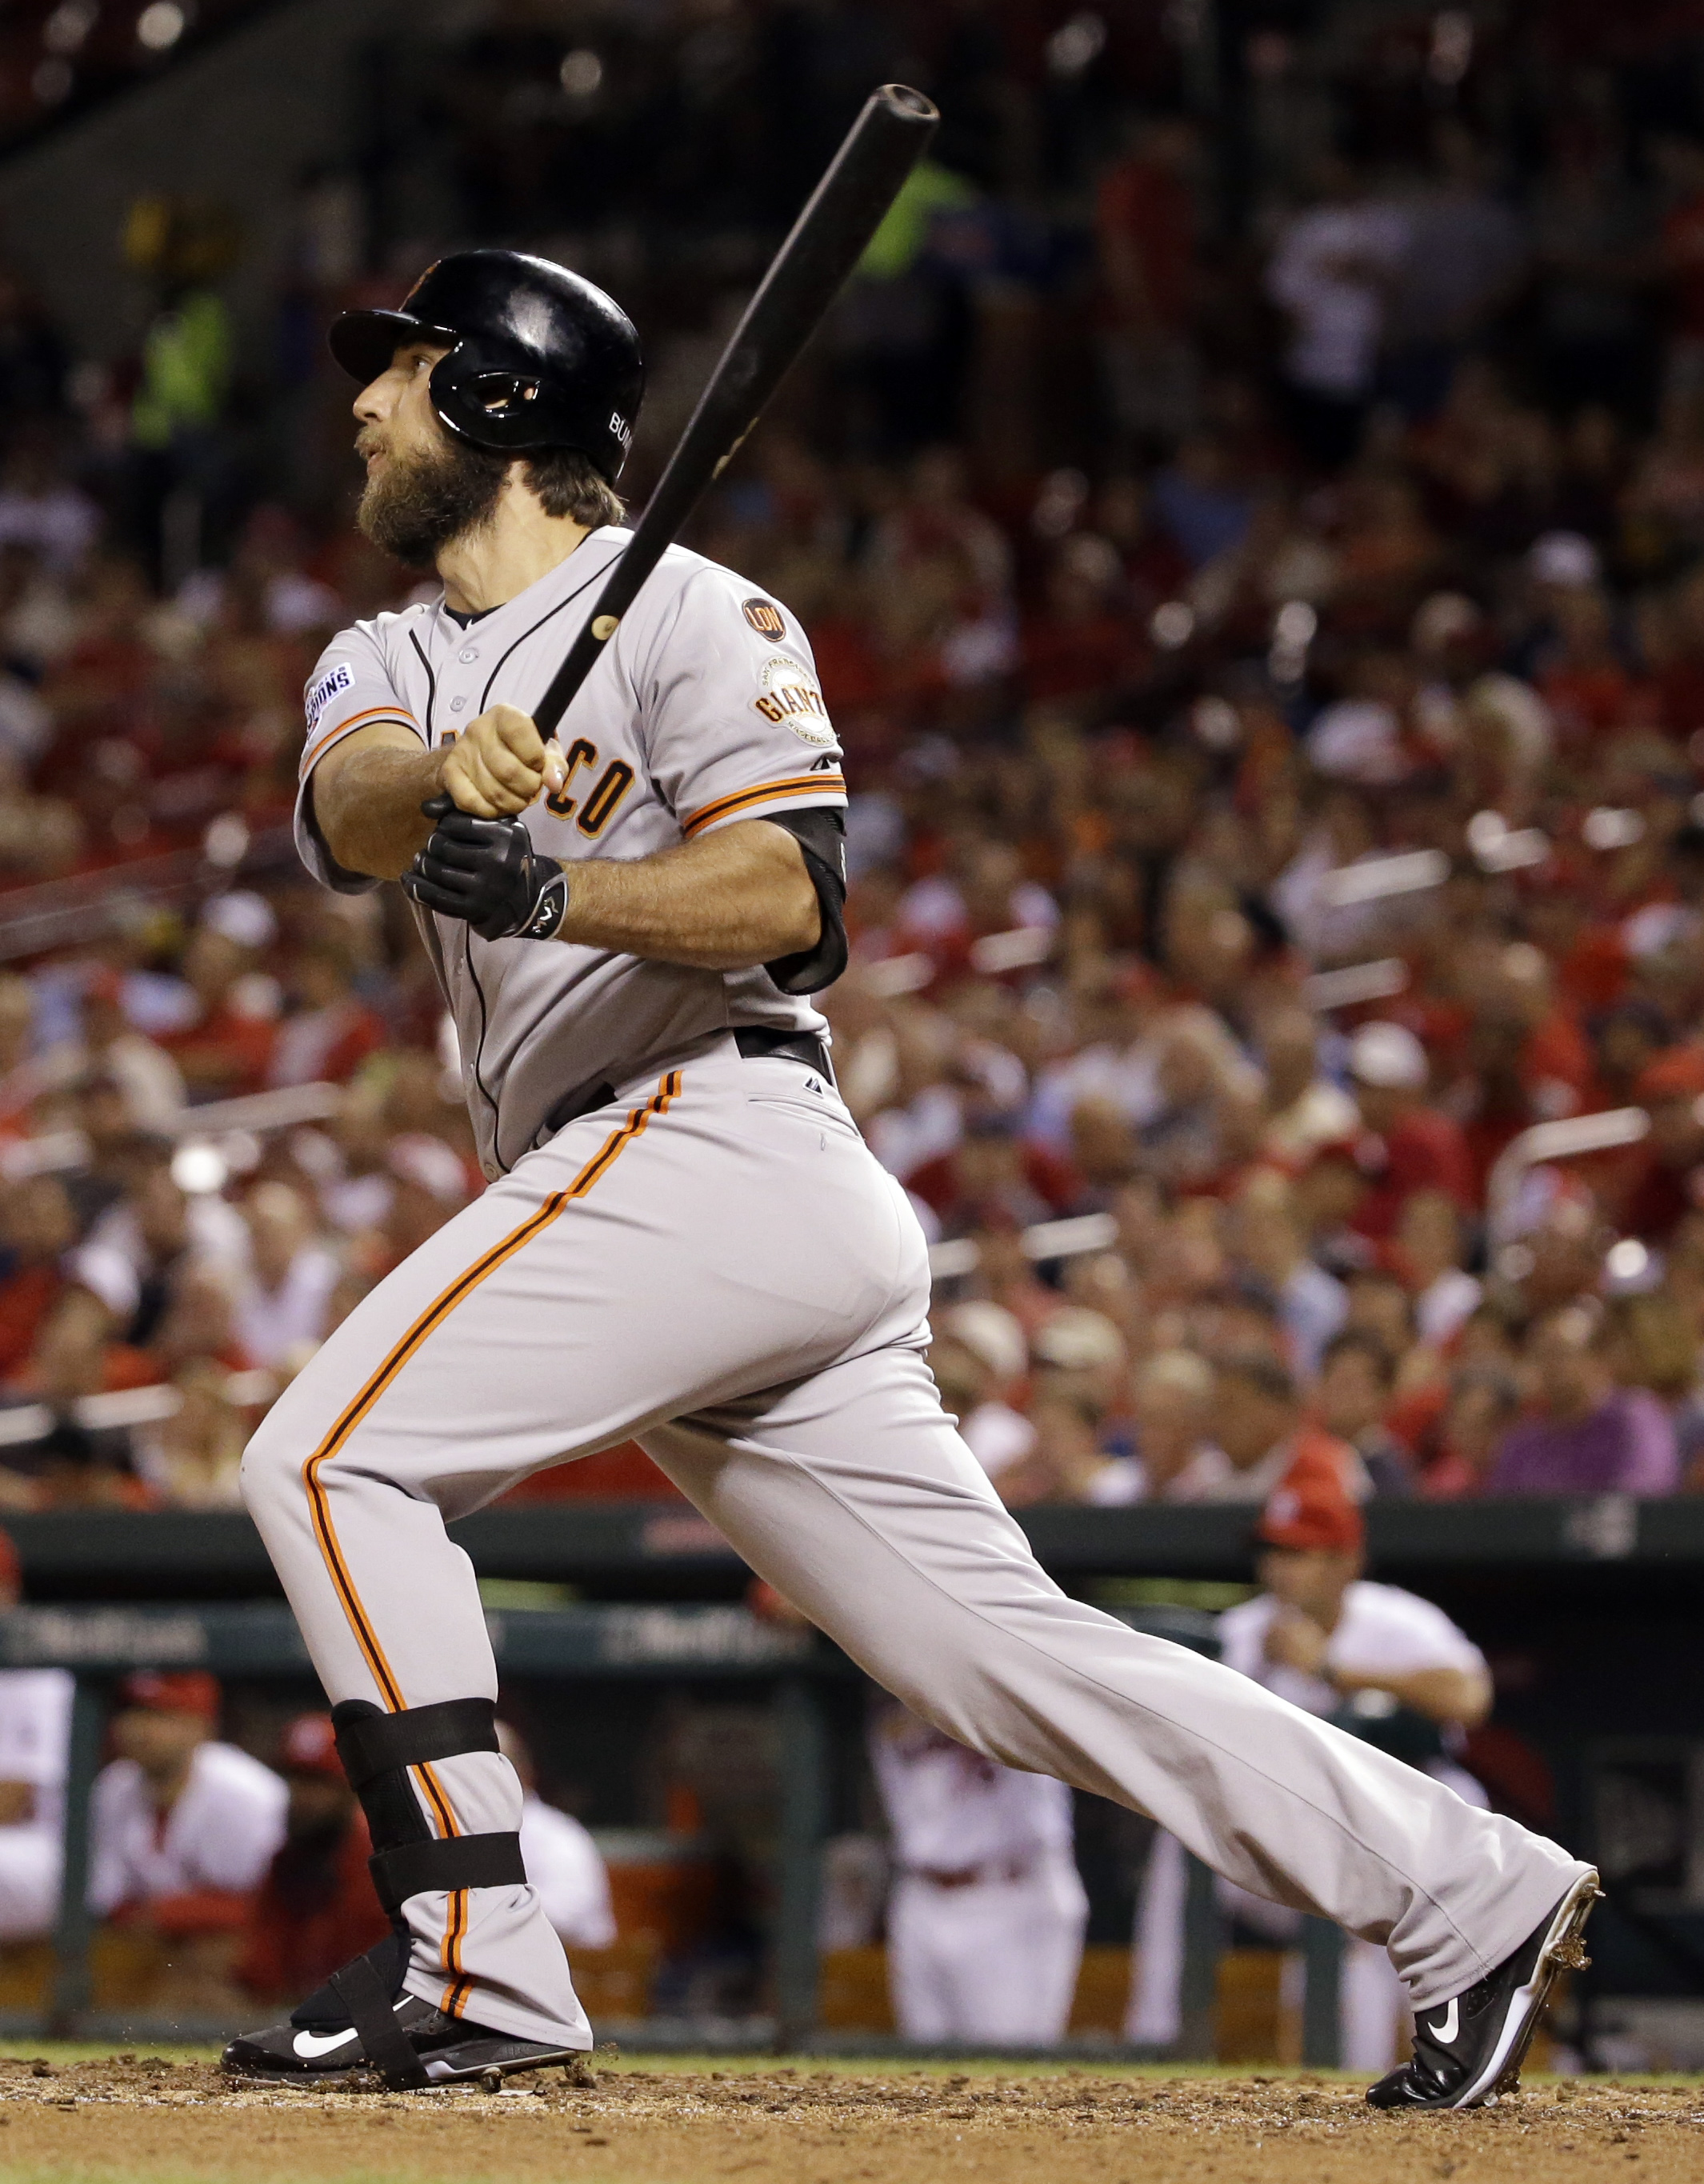 San Francisco Giants' Madison Bumgarner follows through on a single during the seventh inning of a baseball game against the St. Louis Cardinals, Tuesday, Aug. 18, 2015, in St. Louis. Bumgarner scored later in the inning. (AP Photo/Jeff Roberson)